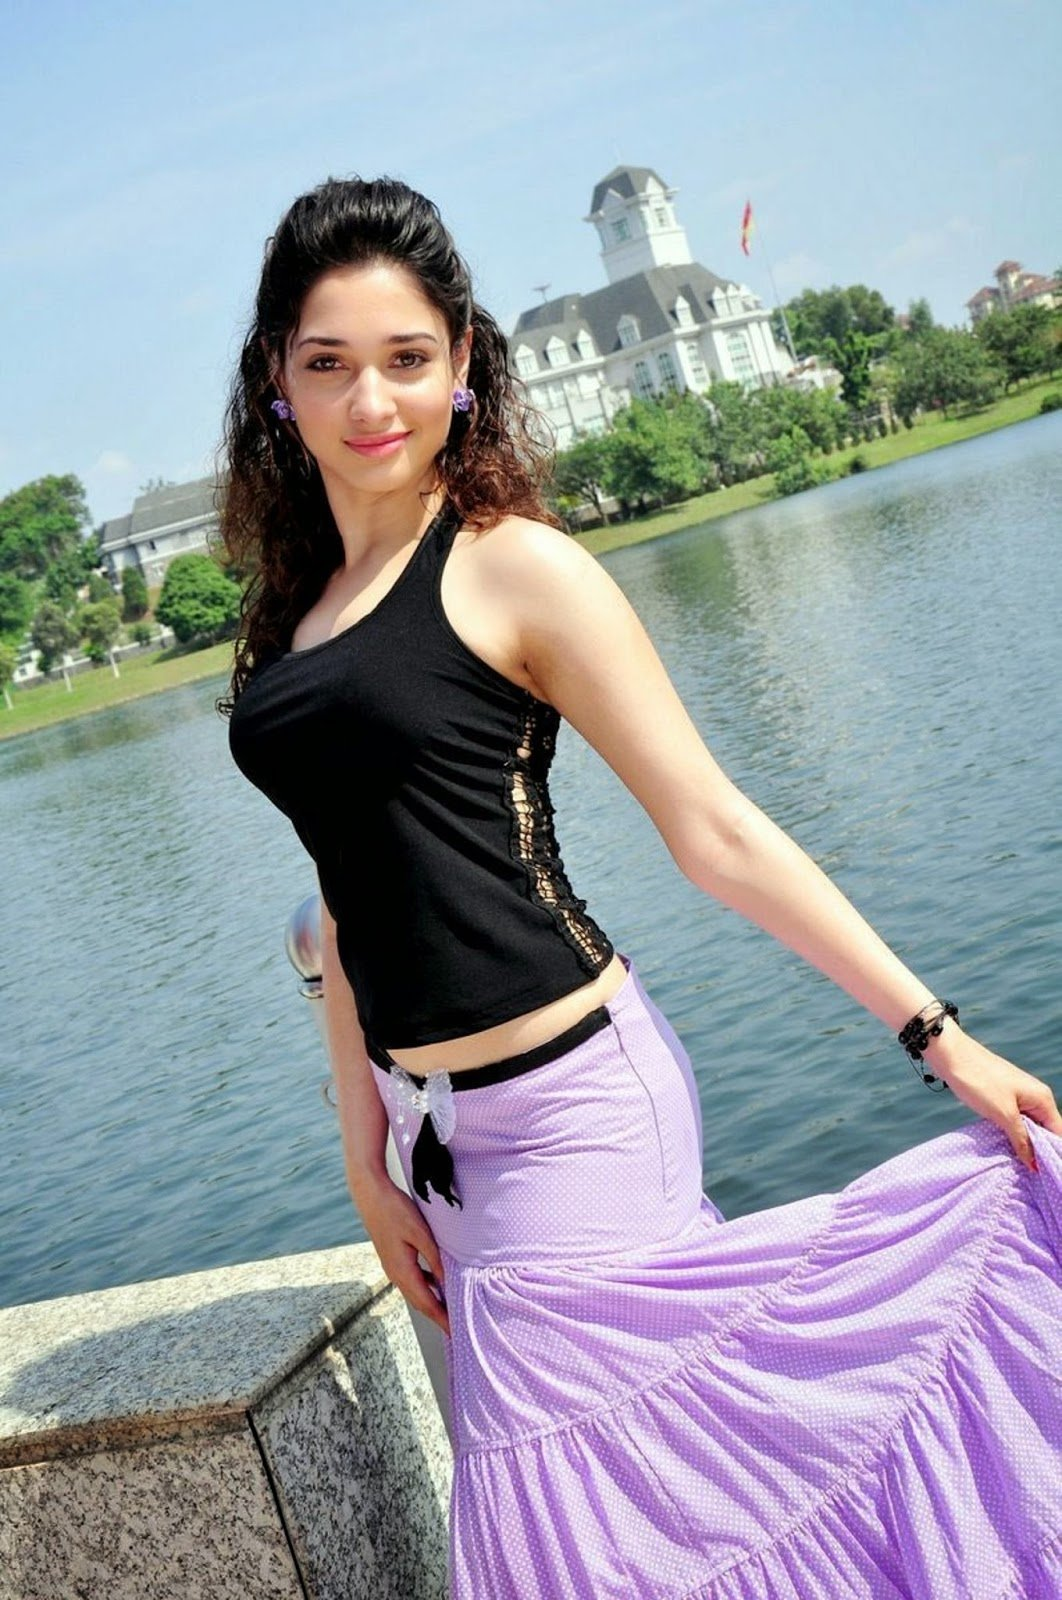 EVERY STARS HD WALLPAPERS FREE DOWNLOAD Tamanna Bhatia Wallpapers 1062x1600